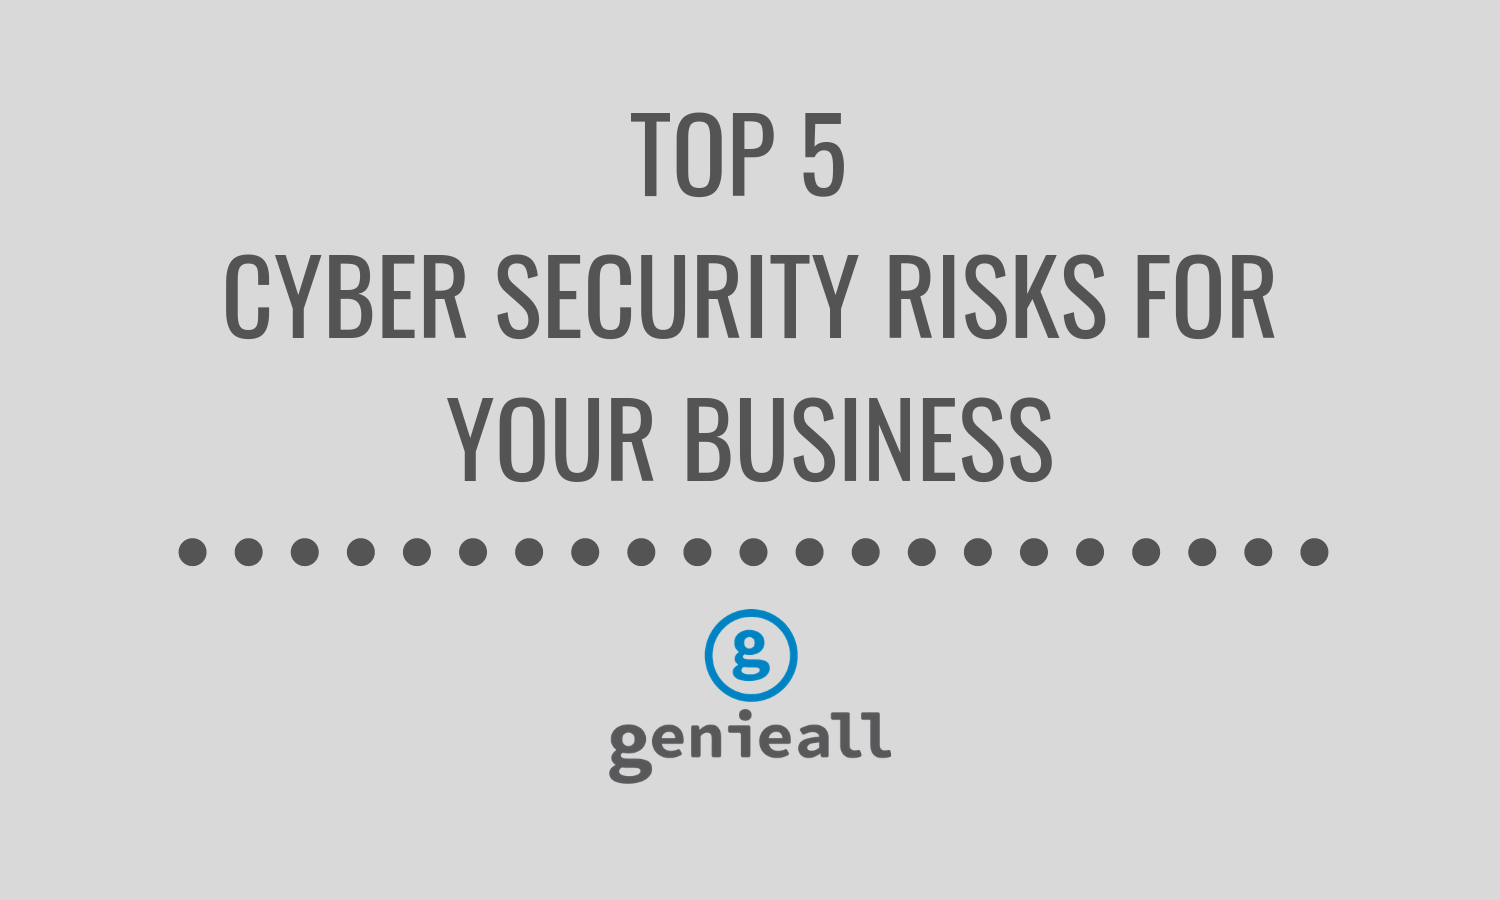 top 5 cyber security risks for your business